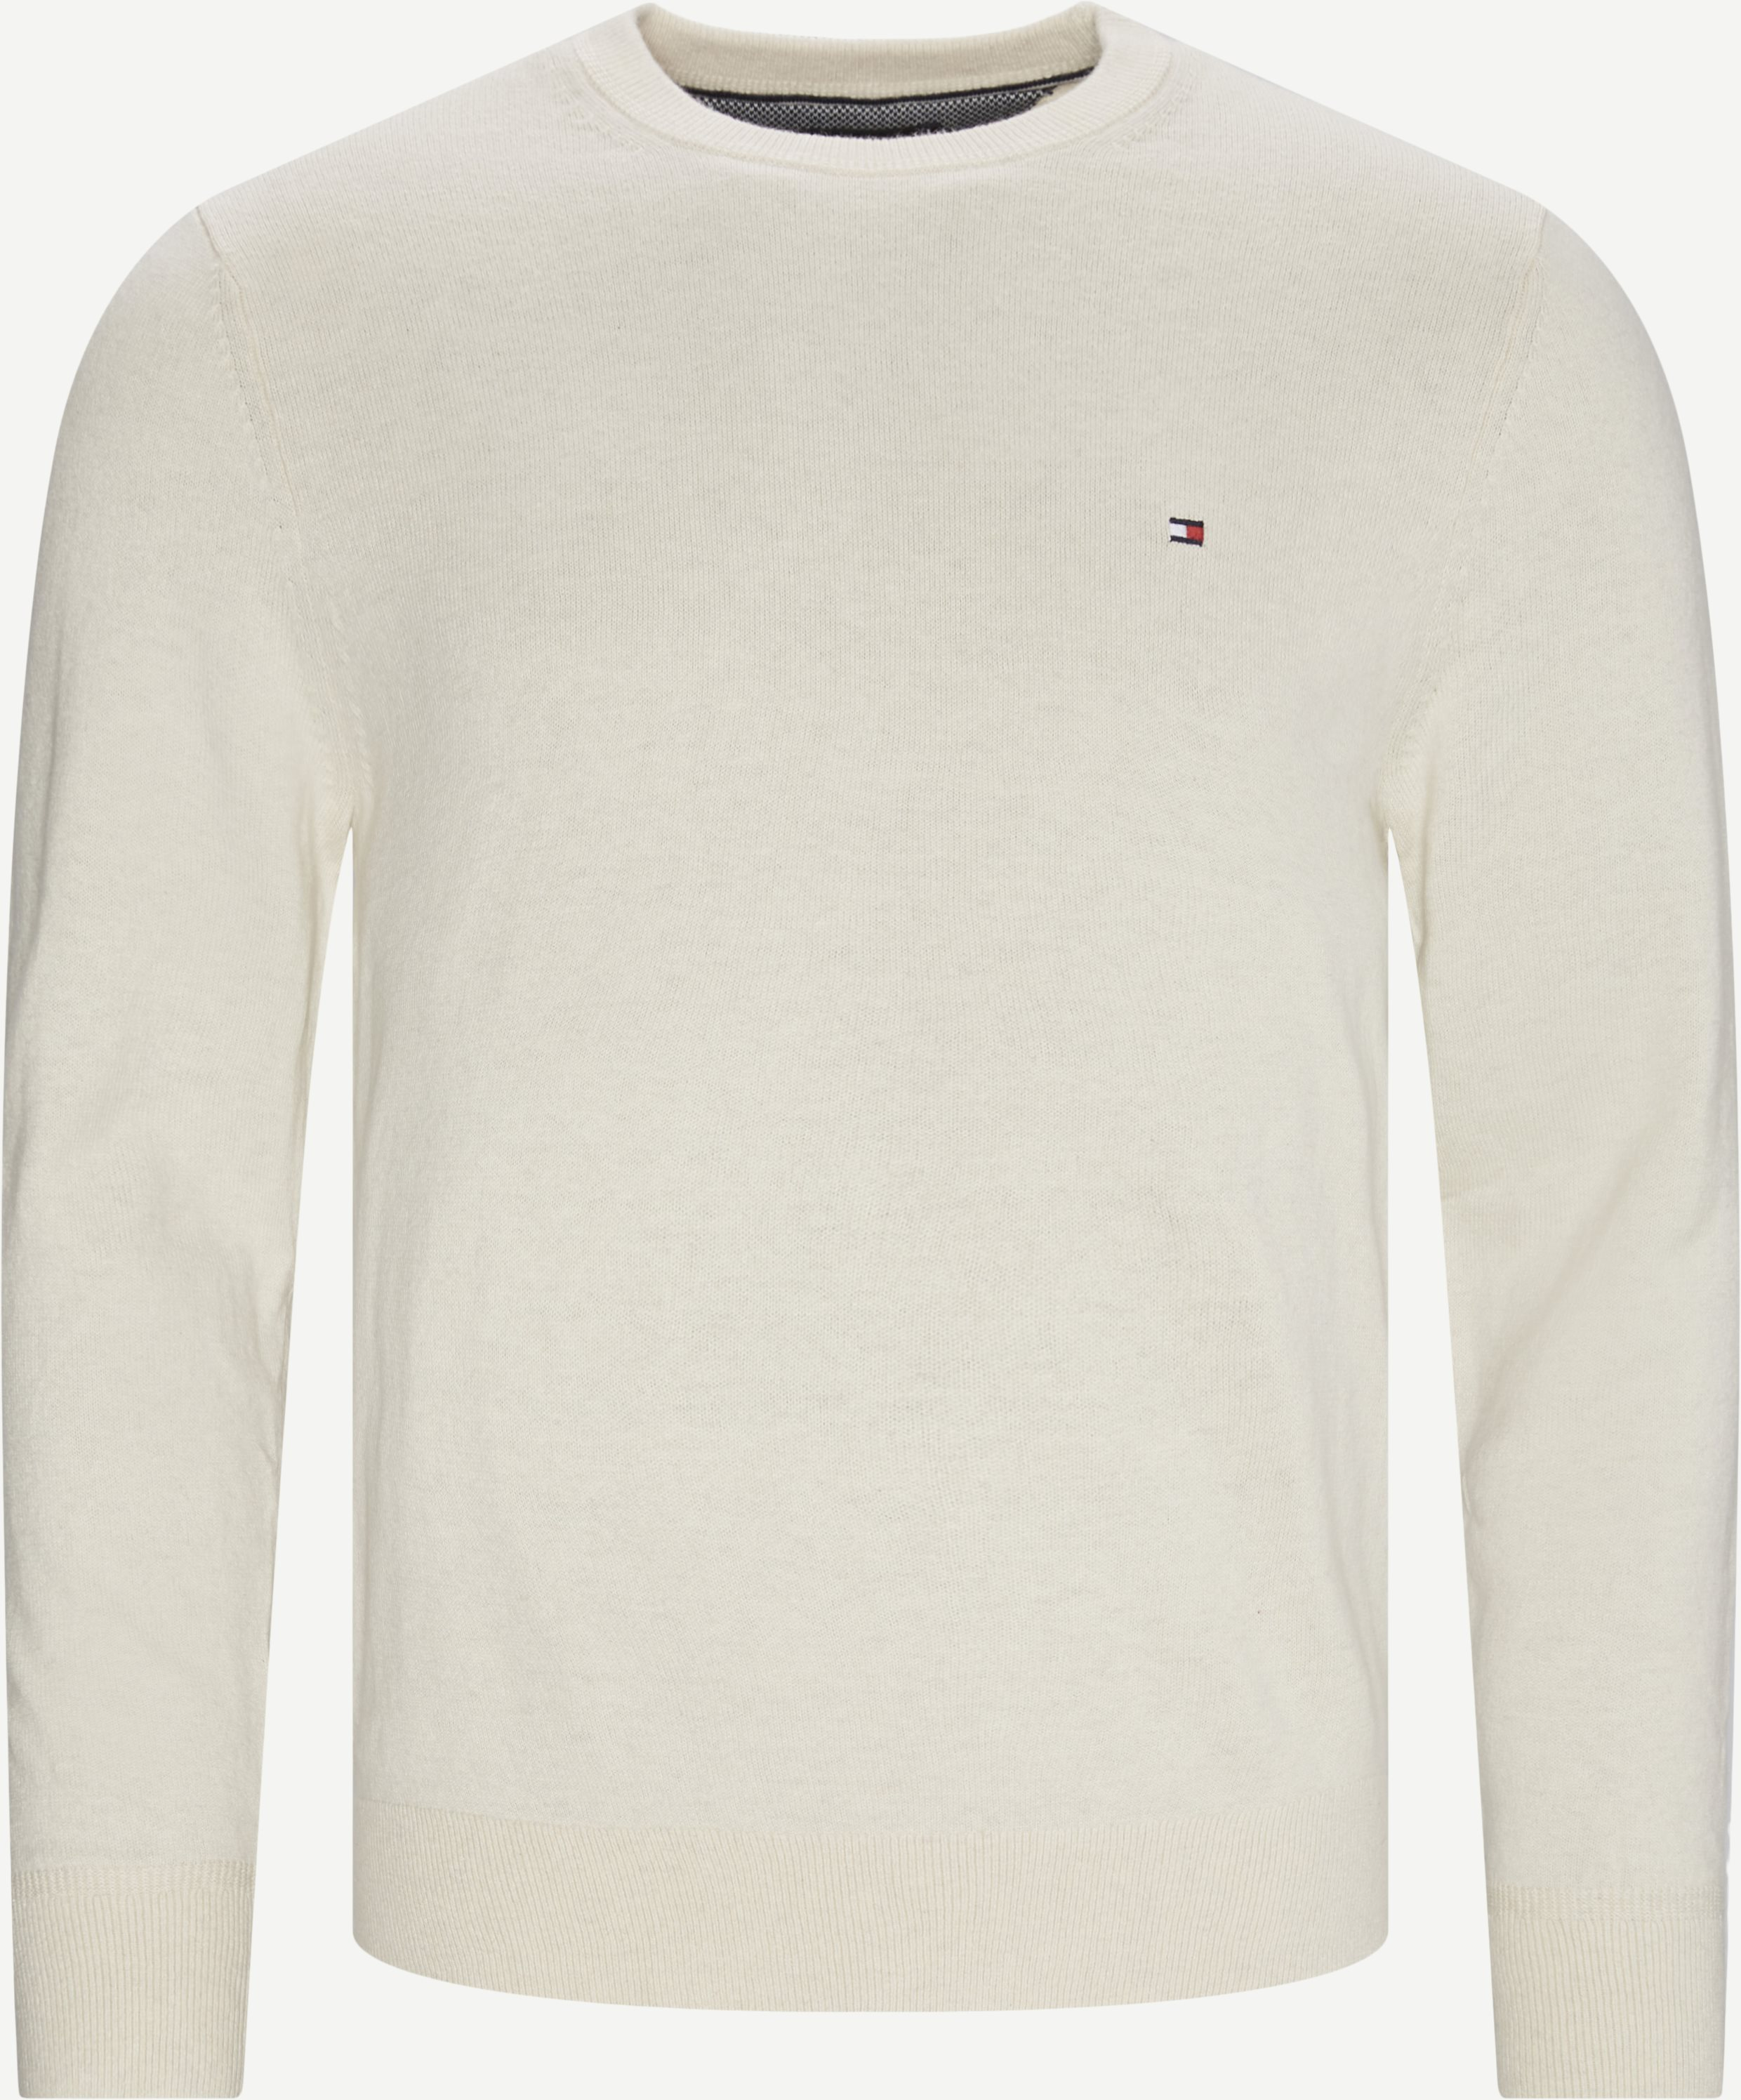 Knitwear - Regular - Sand